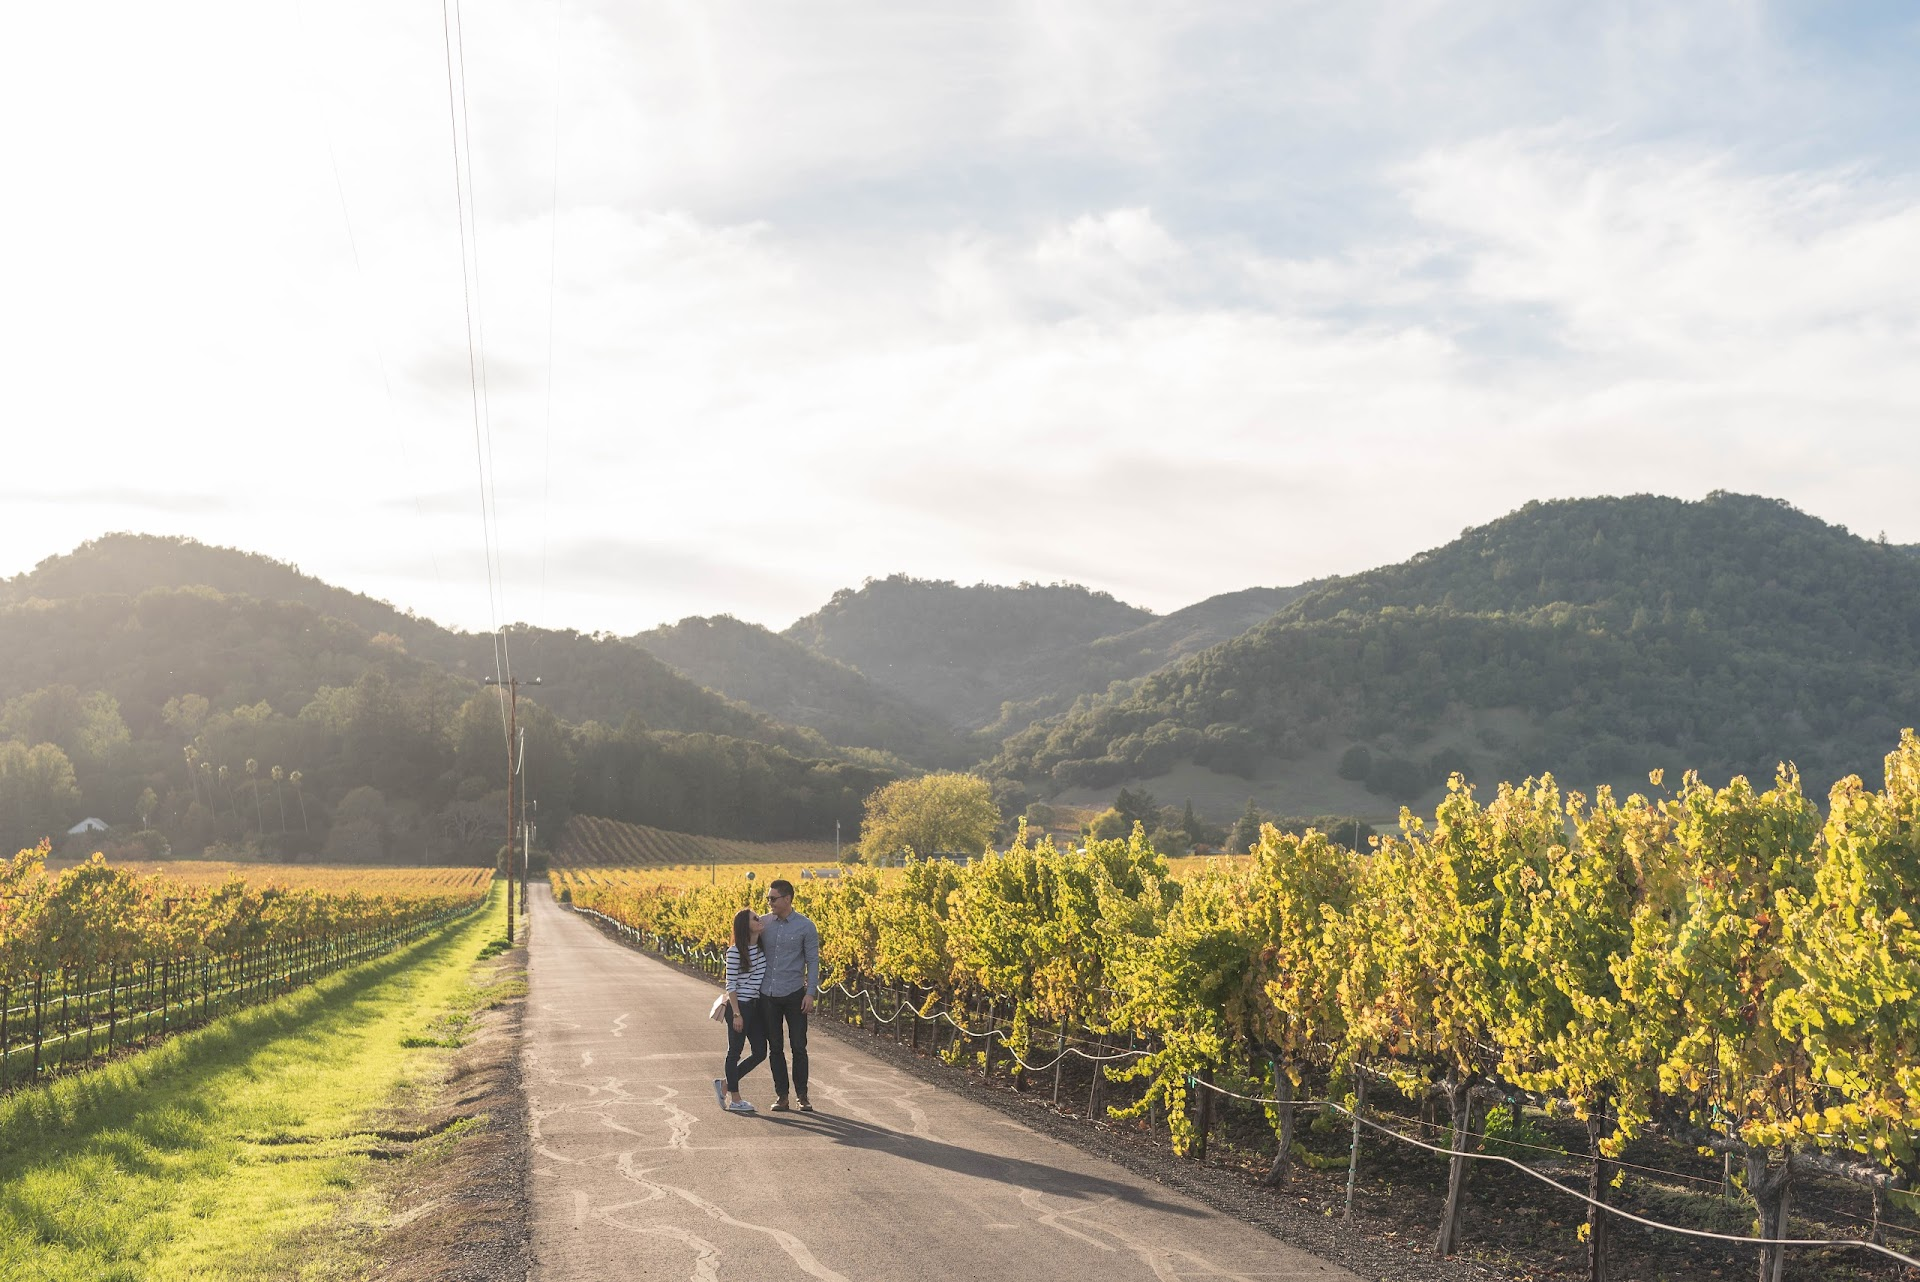 road trip, cheap tips, how to save money on road trips, california, napa valley, yountville, photography, car, vineyards, fall in napa, autumn, couple, travel blog, travel tips